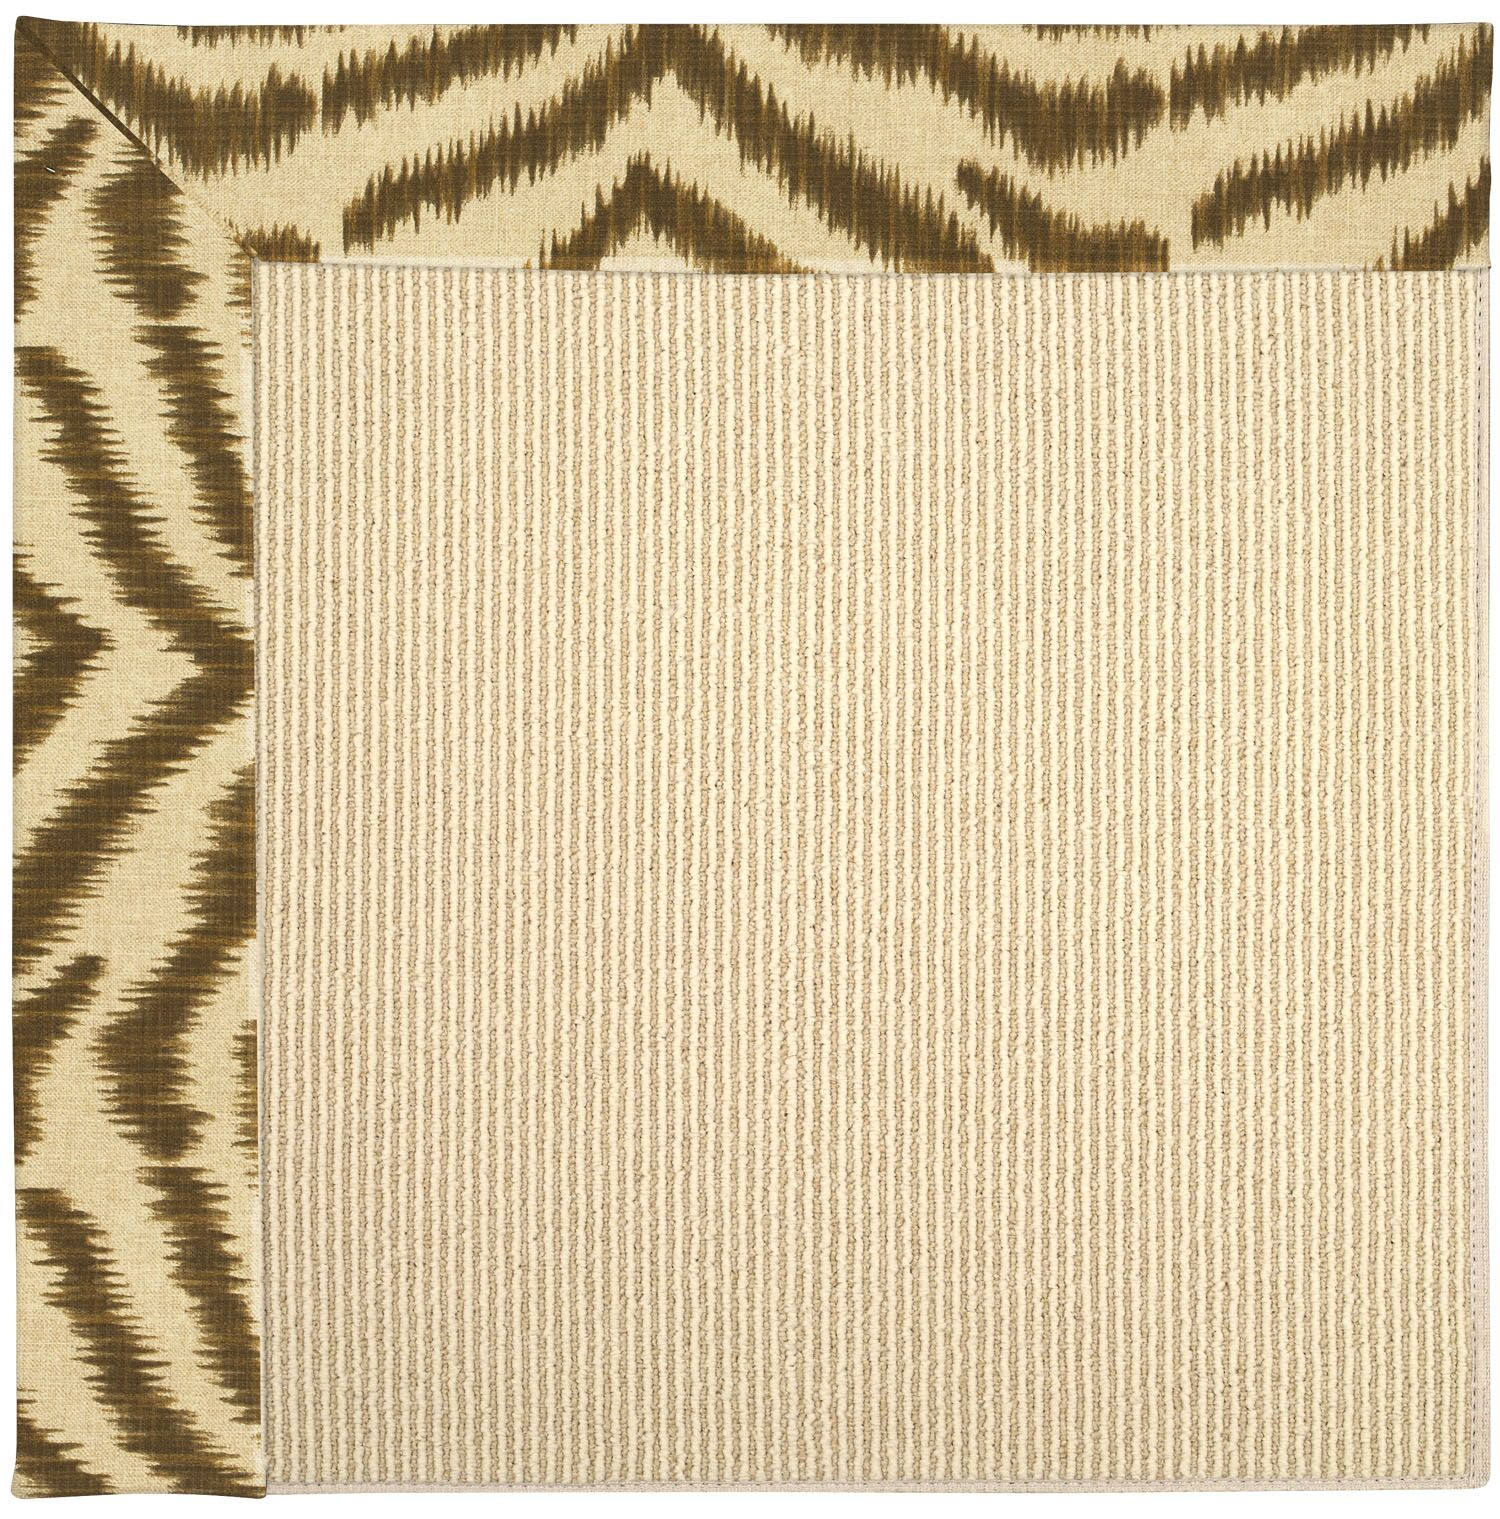 Lisle Machine Tufted Tawny/Brown Indoor/Outdoor Area Rug Rug Size: Square 10'